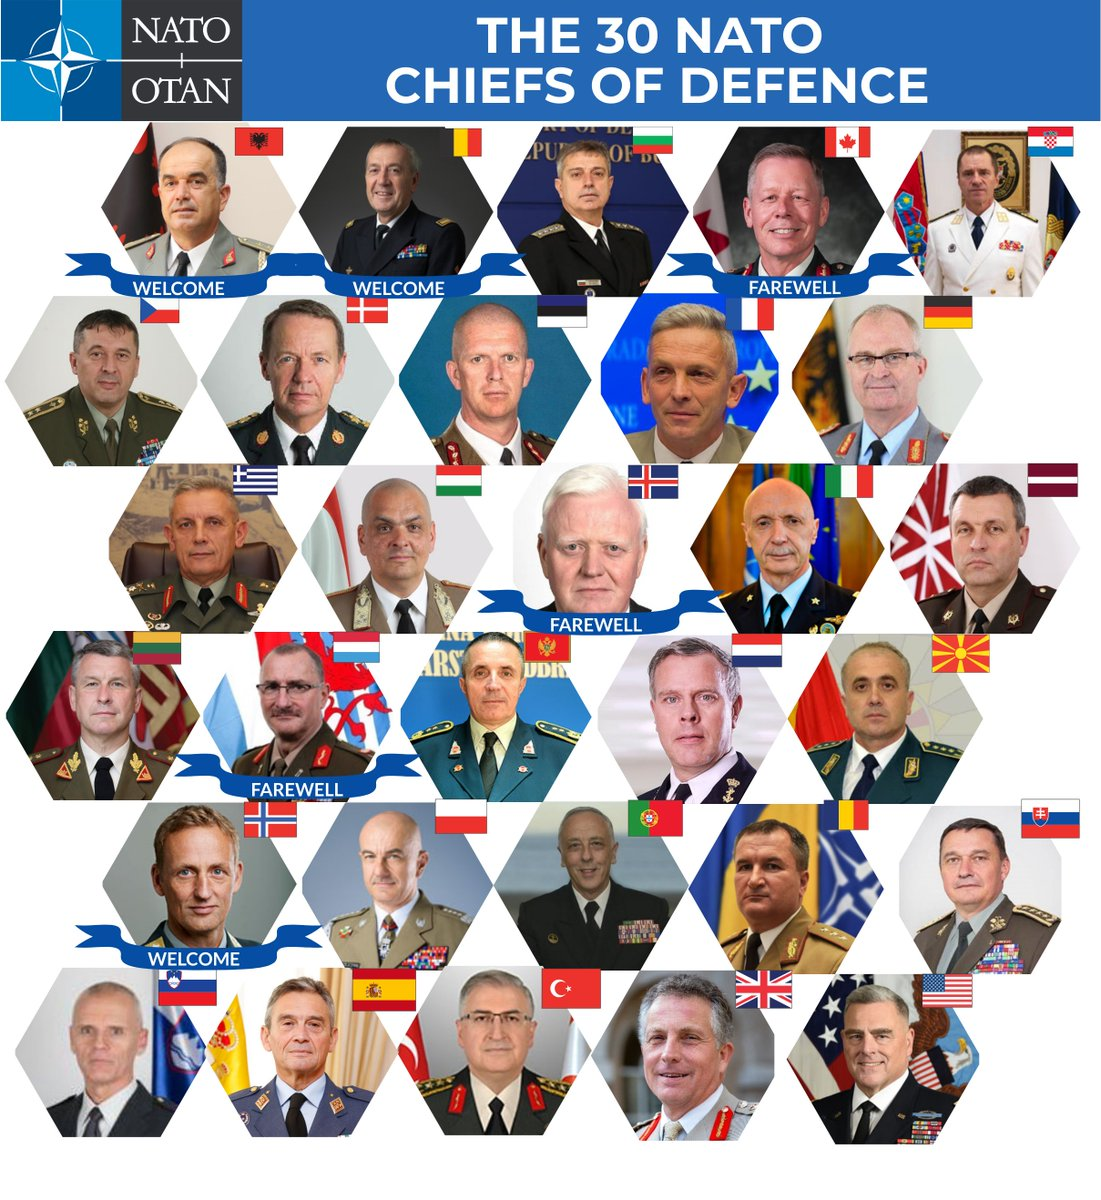 #GenMilley participated virtually in @NATO's 184th Military Committee in Chiefs of Defence Session today along w/ 30 #NATOCHoDs. The world's strongest alliance remains ready and vigilant. Heres our readout: go.usa.gov/xGQZk More ℹ️ on #NATOMC: nato.int/cps/en/natohq/…